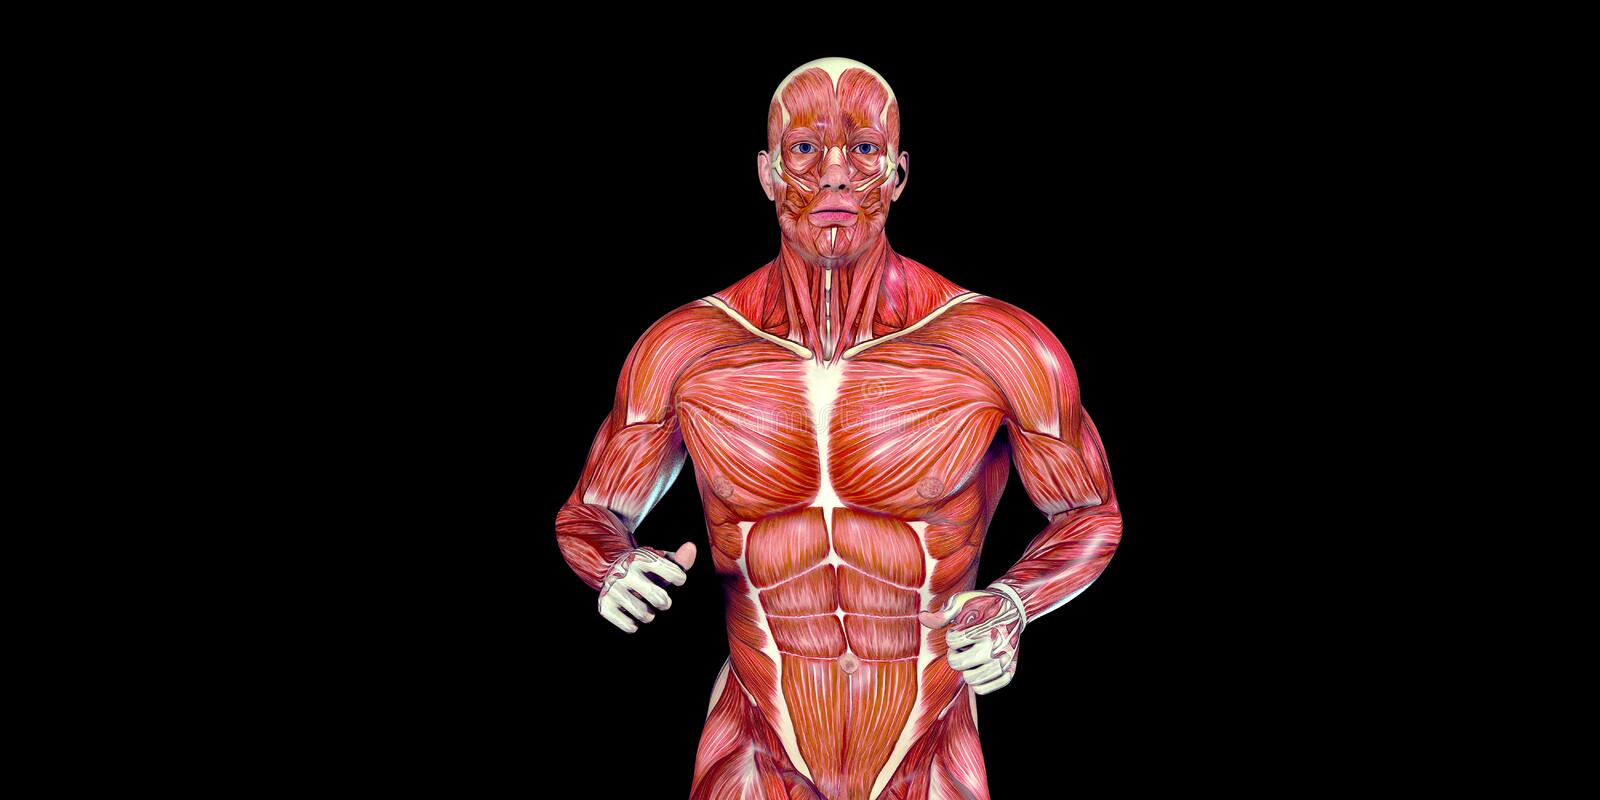 Human Male Body Anatomy Illustration of a human torso with visible muscles. Human Male Body Anatomy Illustration with visible muscles and tendons vector illustration